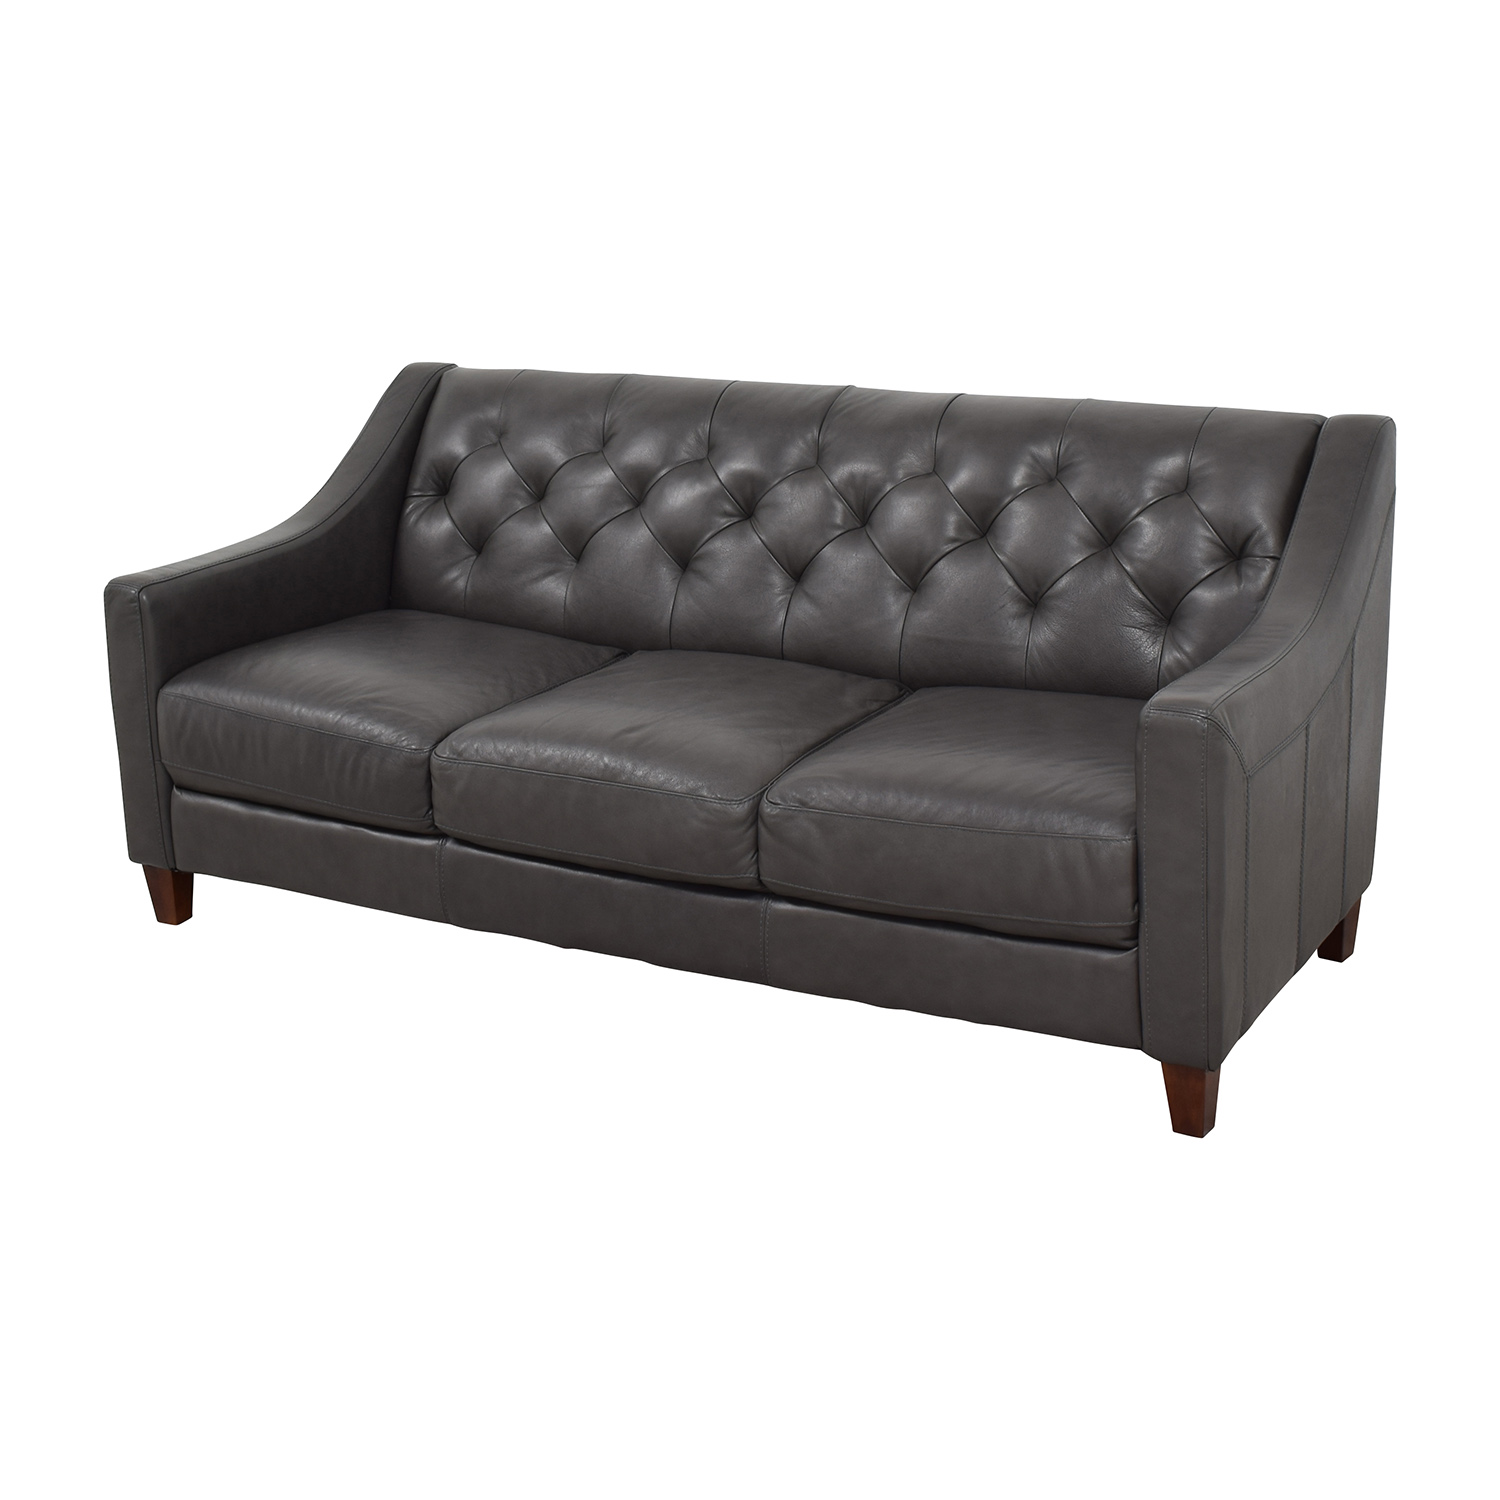 tufted sofa leather black covers canada 69 off macy 39s gray sofas